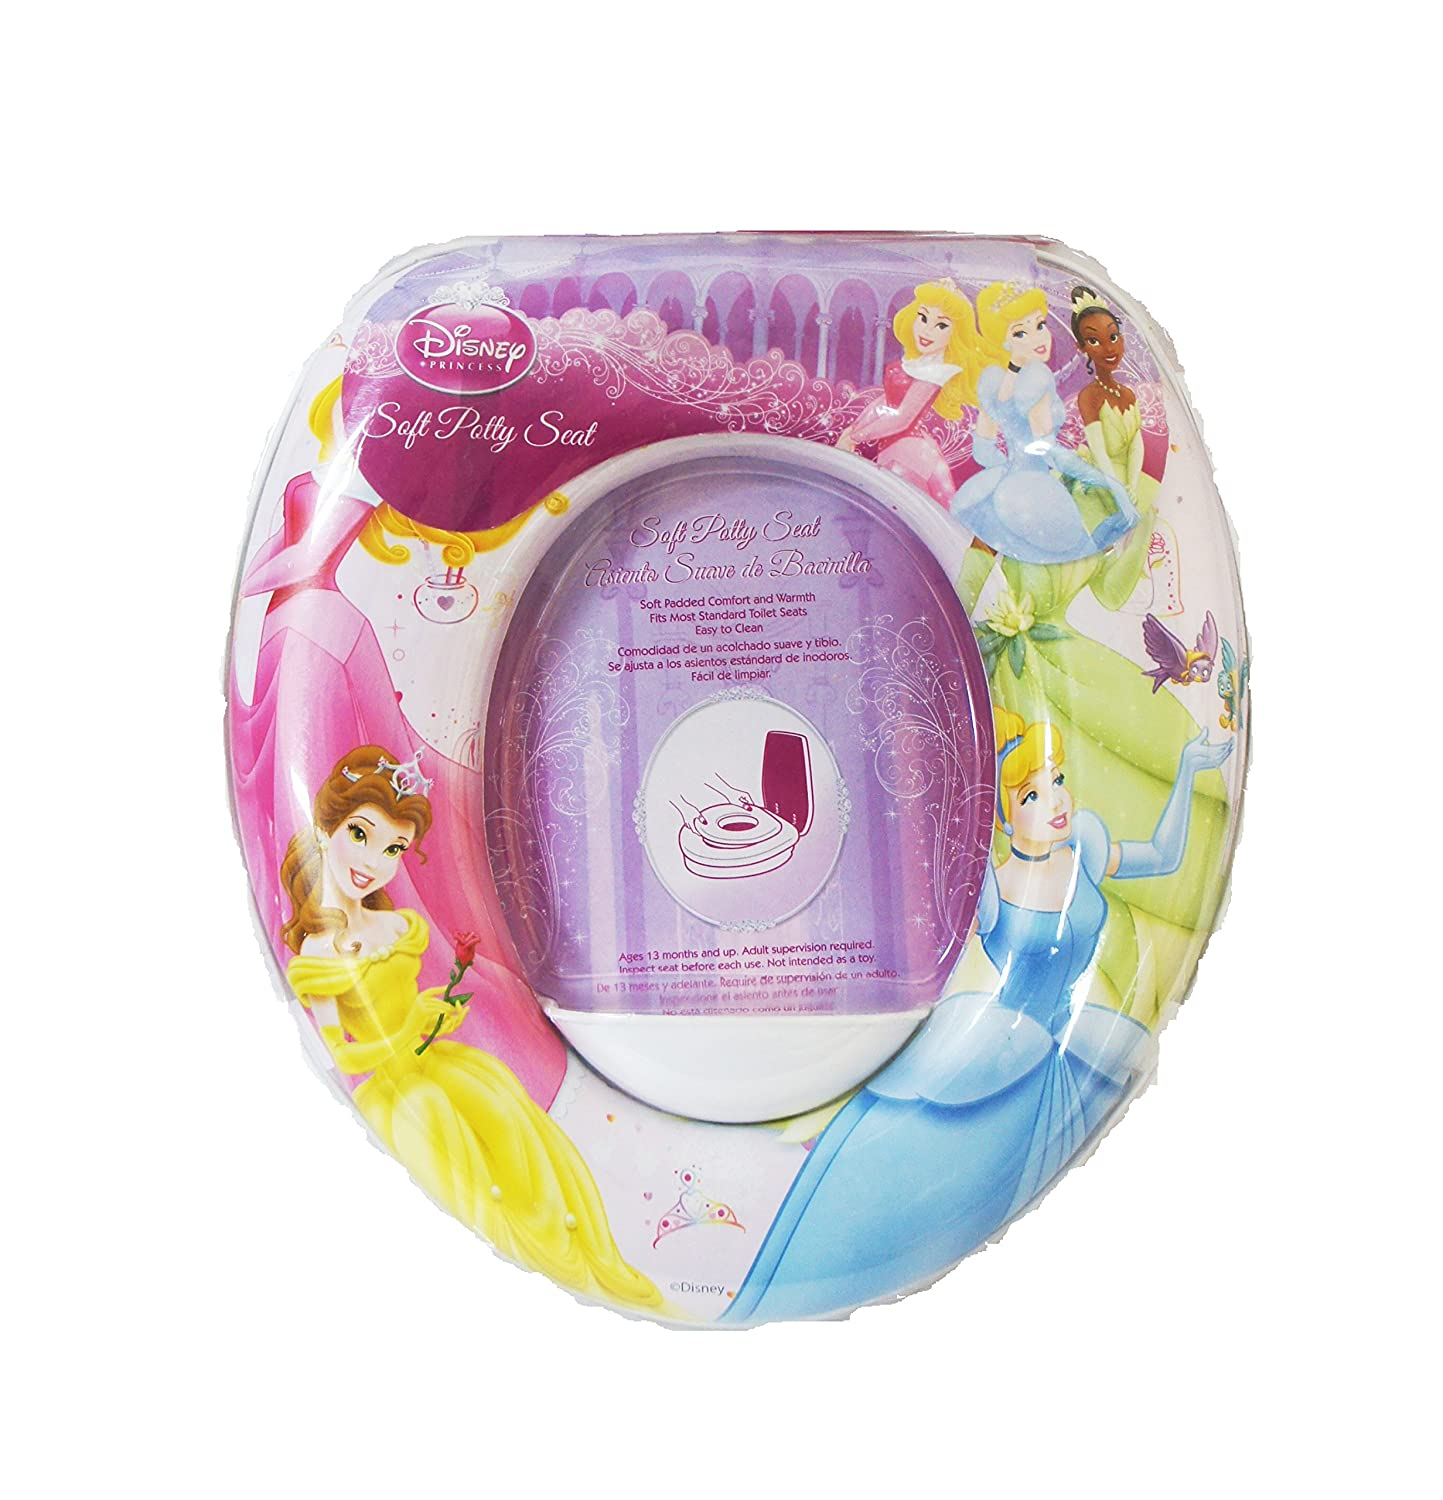 Princesses Soft Potty Seat Regent Baby Products Disney P8920